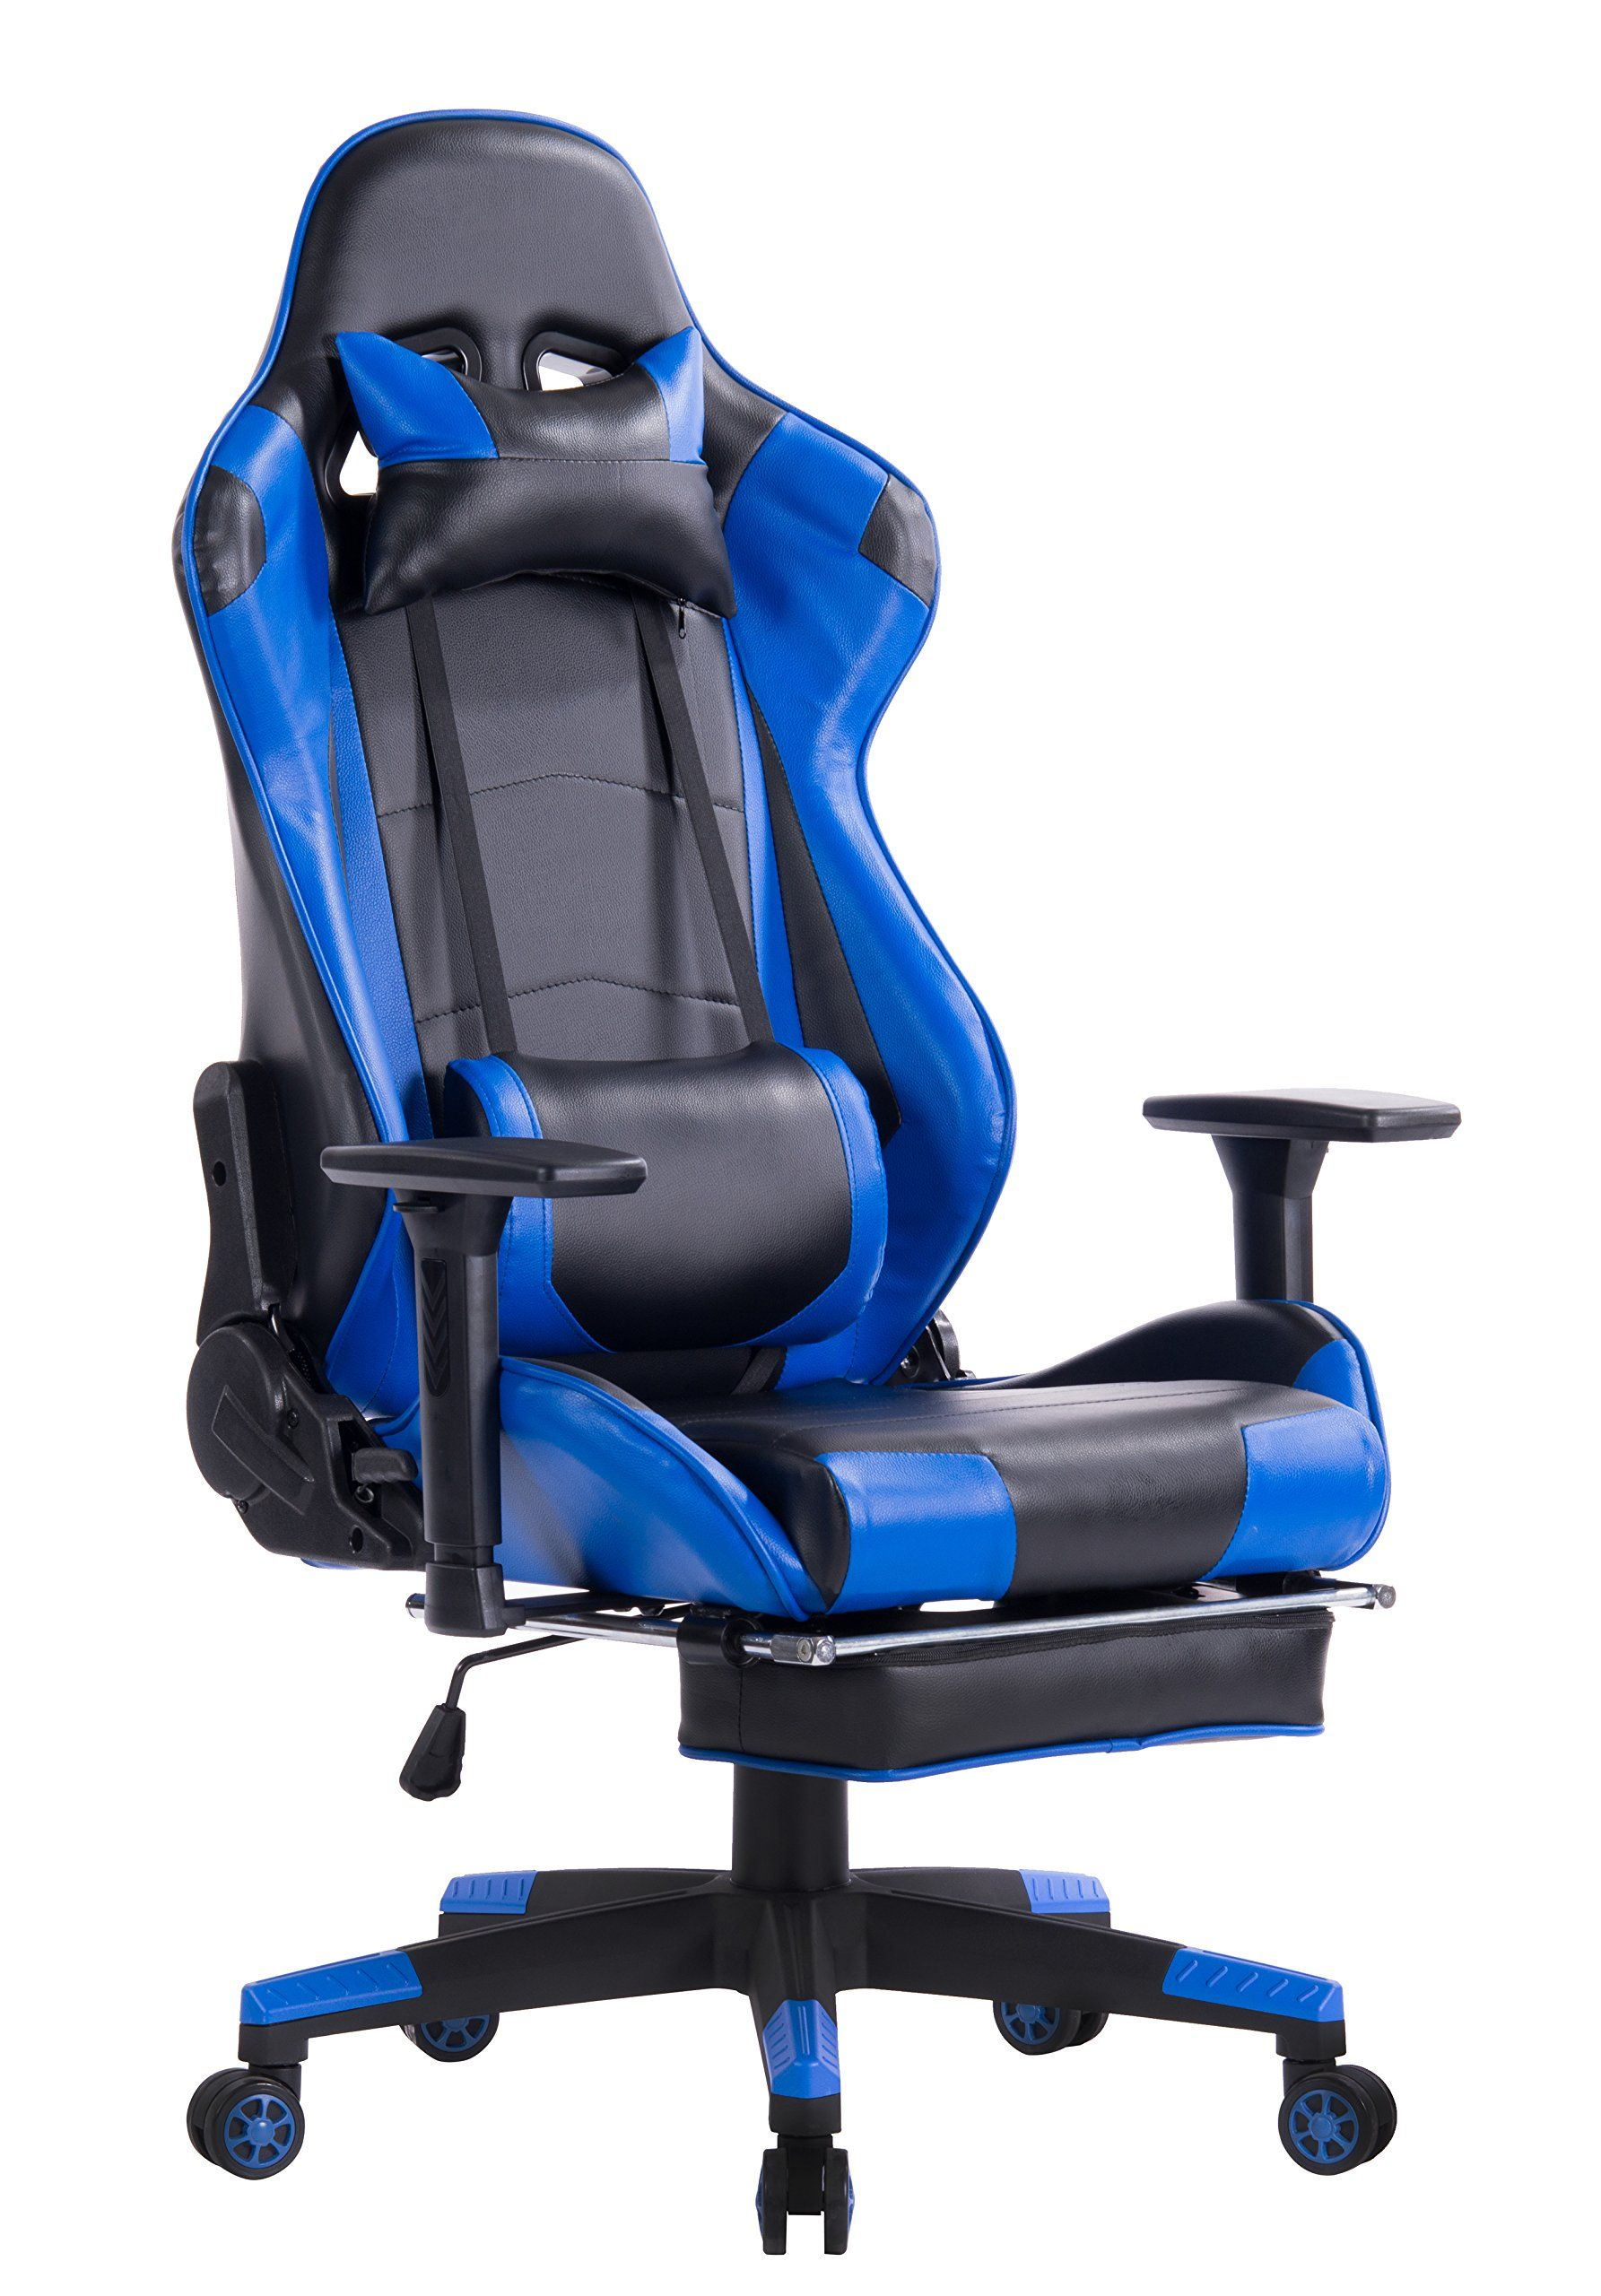 gaming chair with footrest leather swing awesome best lumbar support for office rtty1